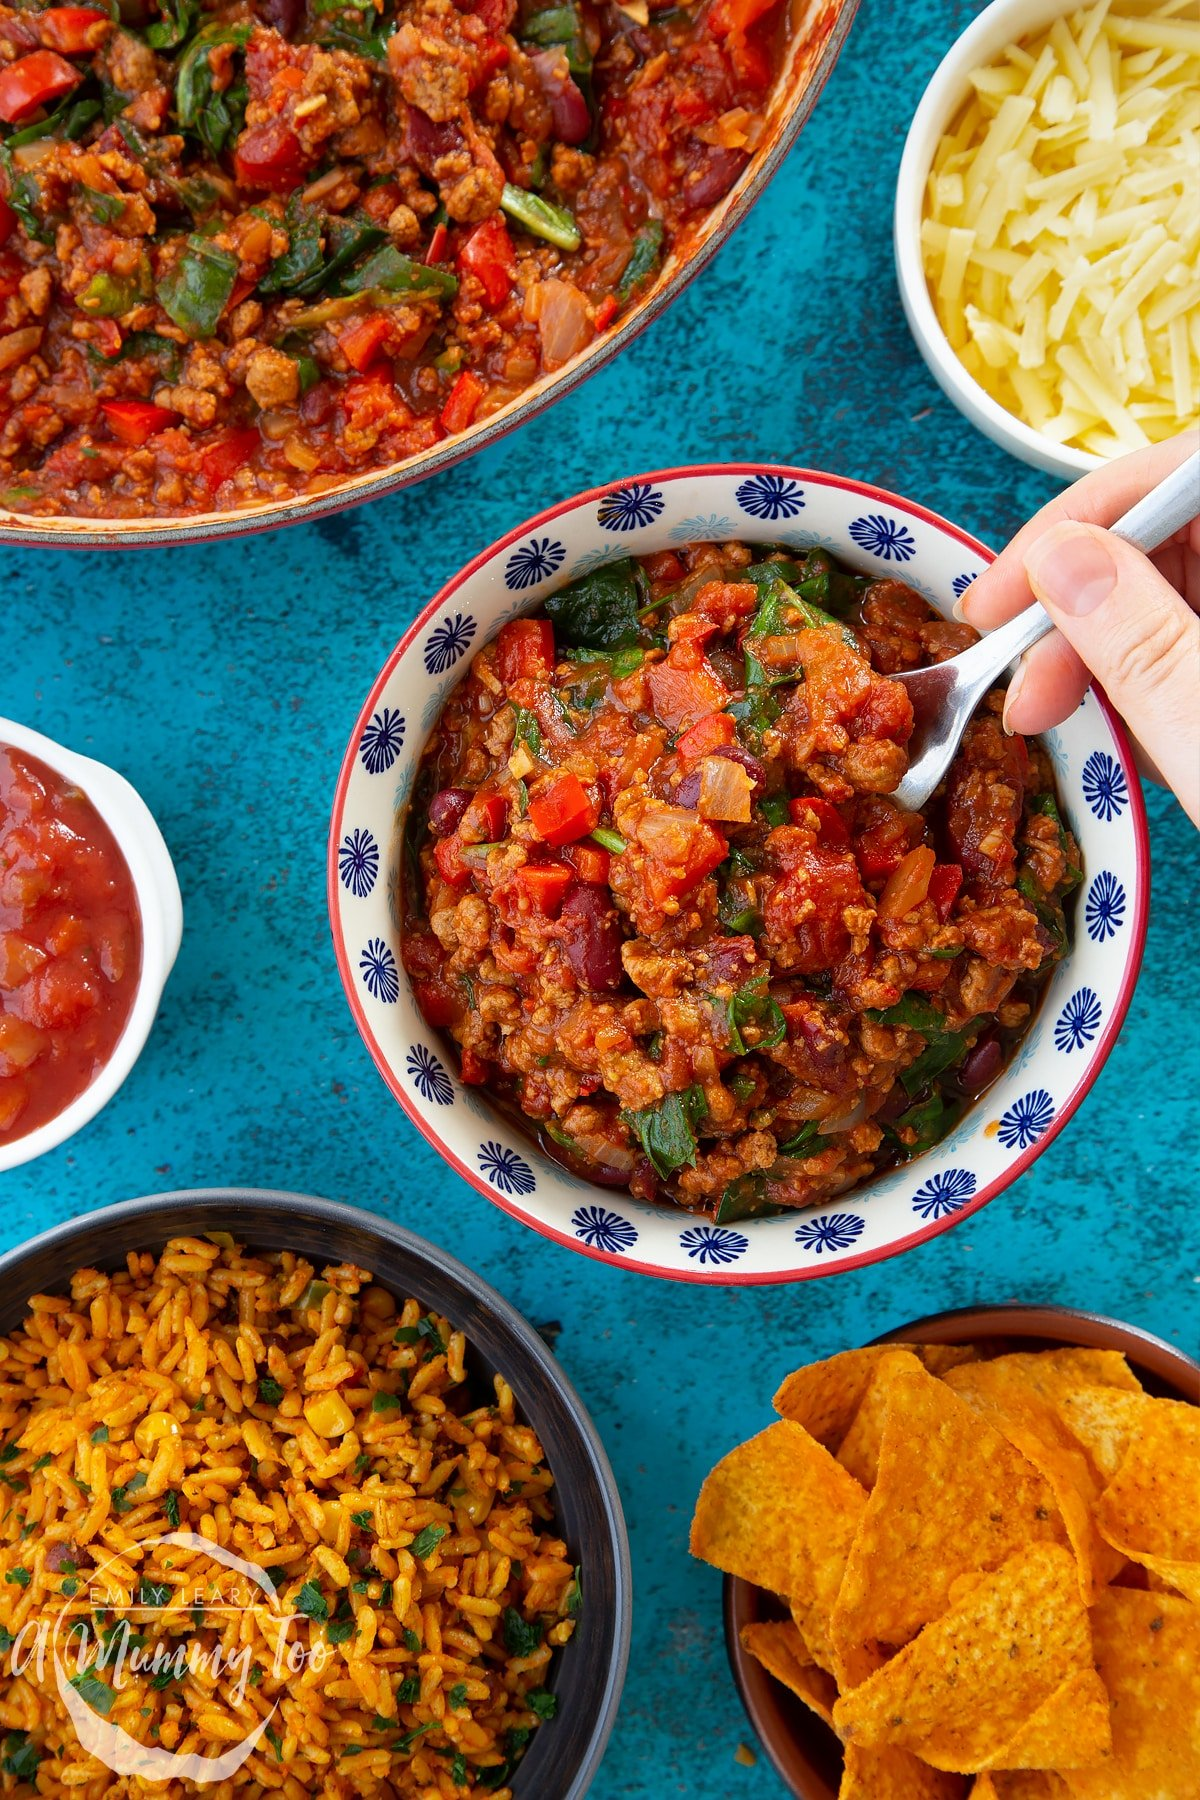 Vegetarian mince chilli in a bowl. A hand holding a fork delves into the chilli. Bowls containing tortilla chips, salsa, grated cheese and spicy rice are also shown.